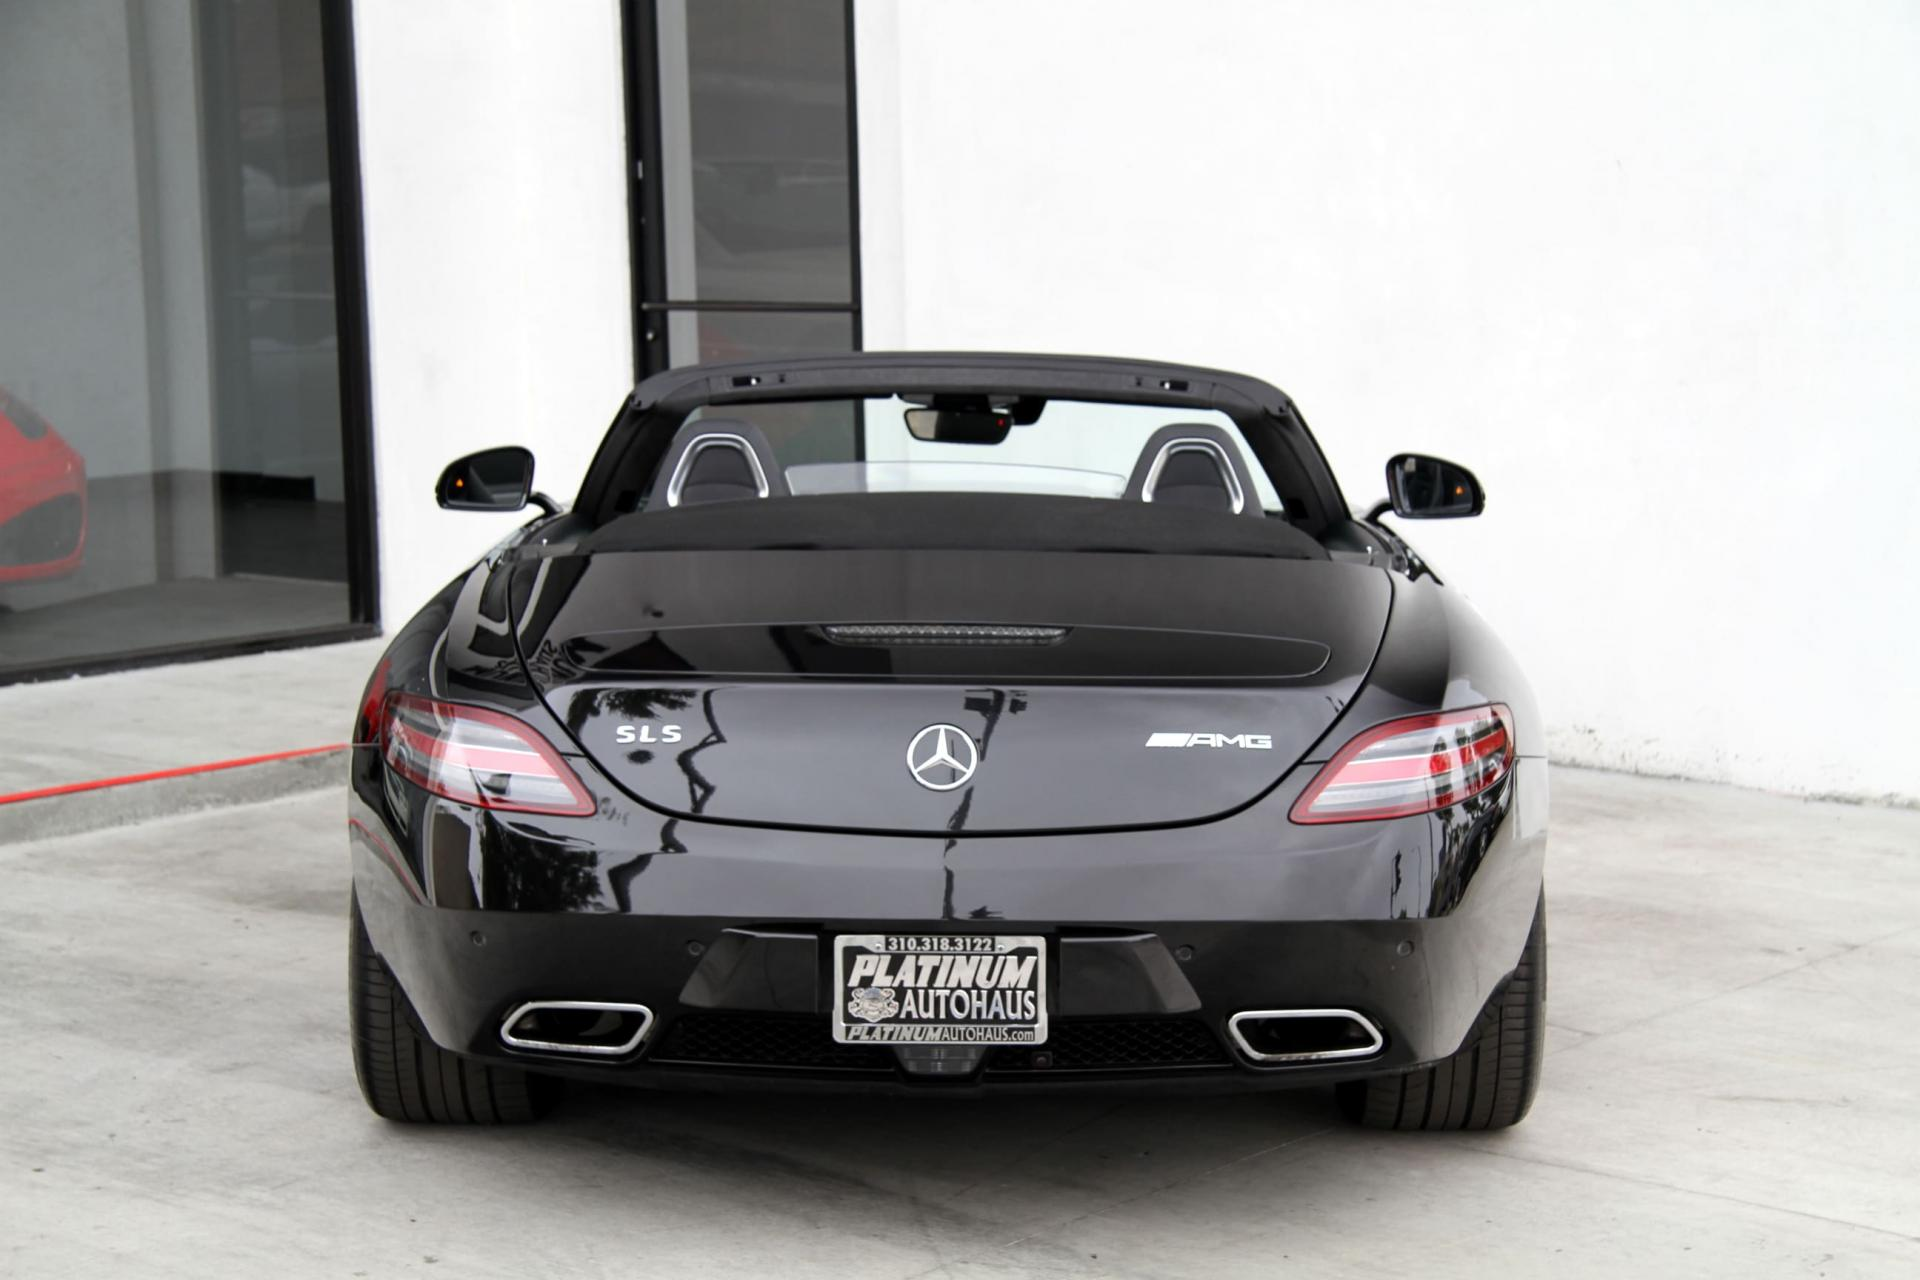 2012 mercedes benz sls 63 amg stock 5903 for sale near for Used mercedes benz sls amg for sale